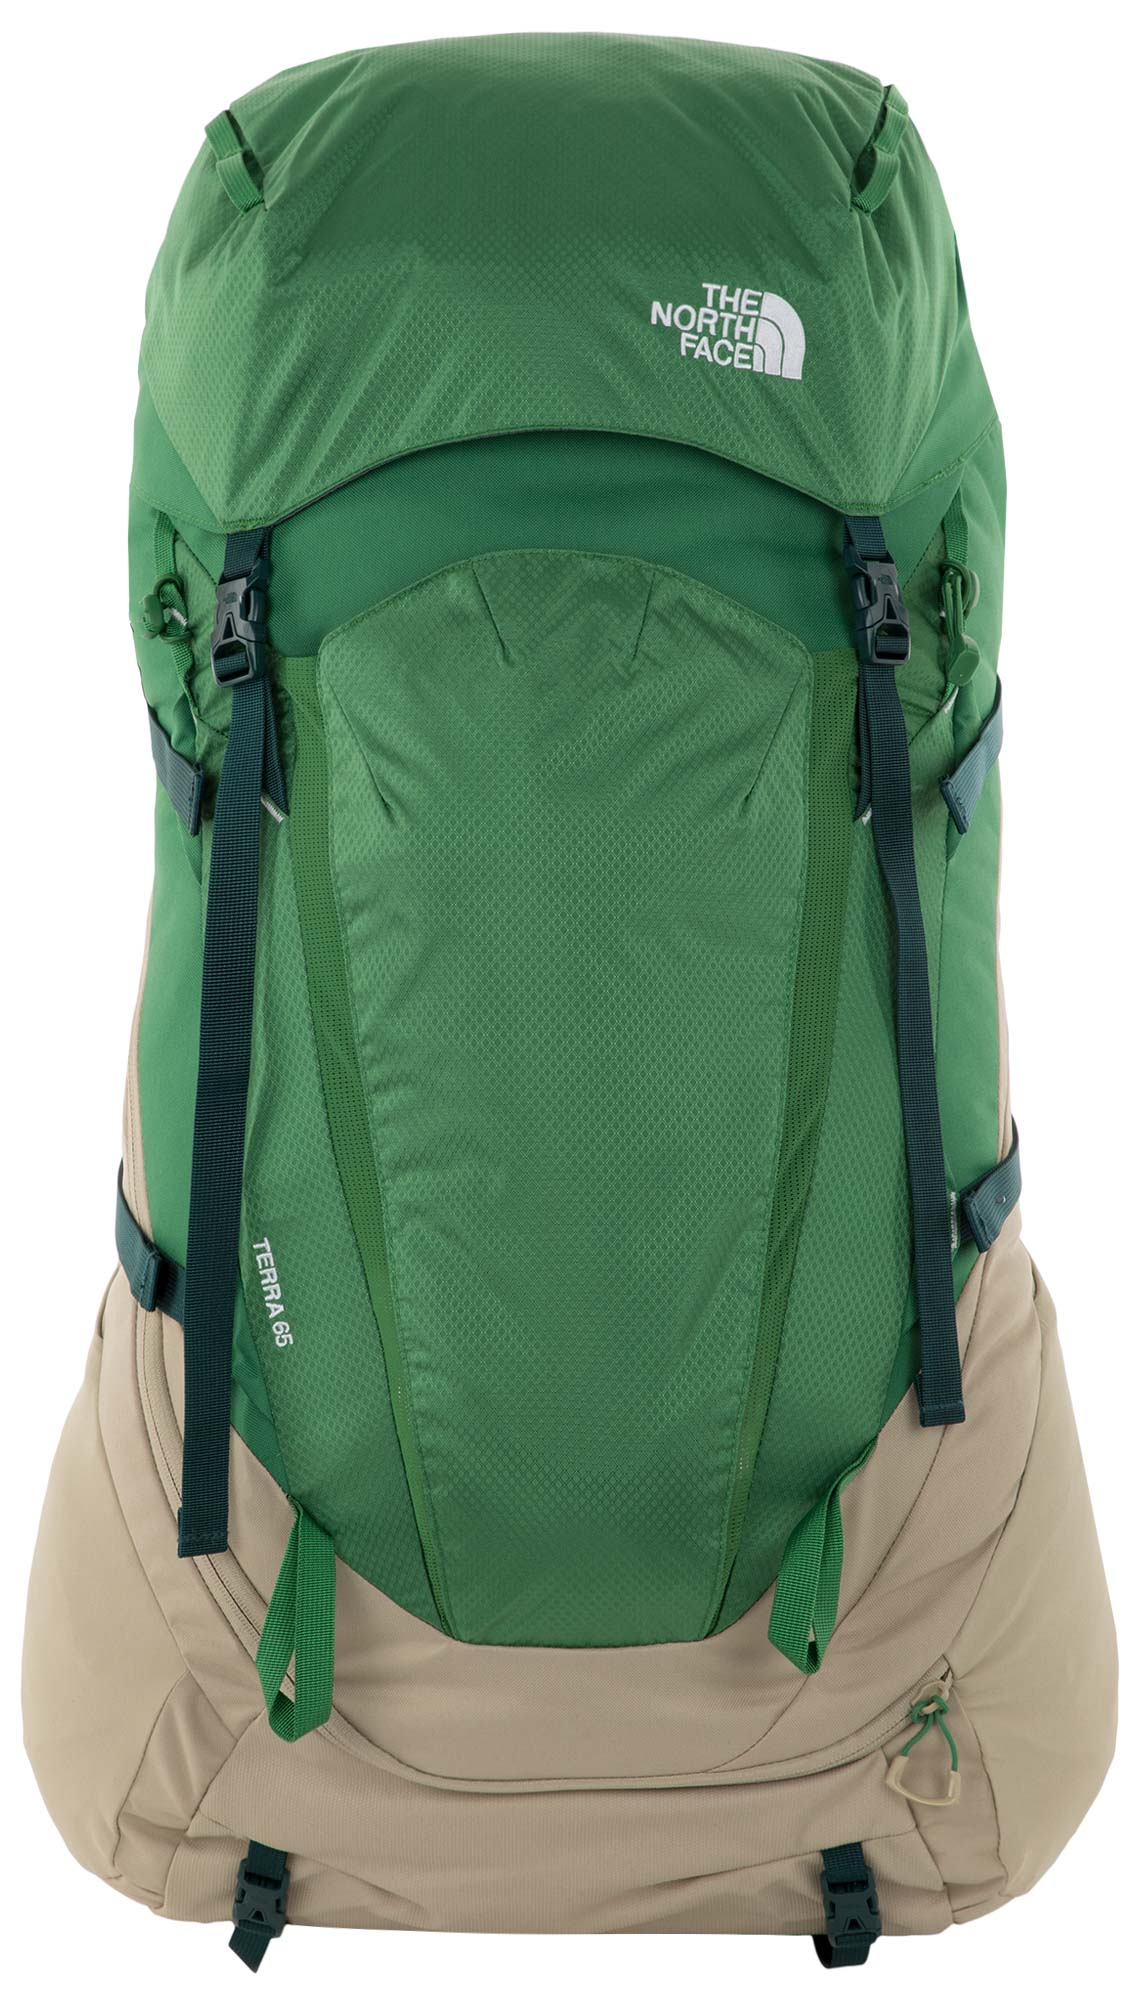 The North Face Рюкзак The North Face Terra 65 накидка на рюкзак the north face the north face pack rain cover красный l